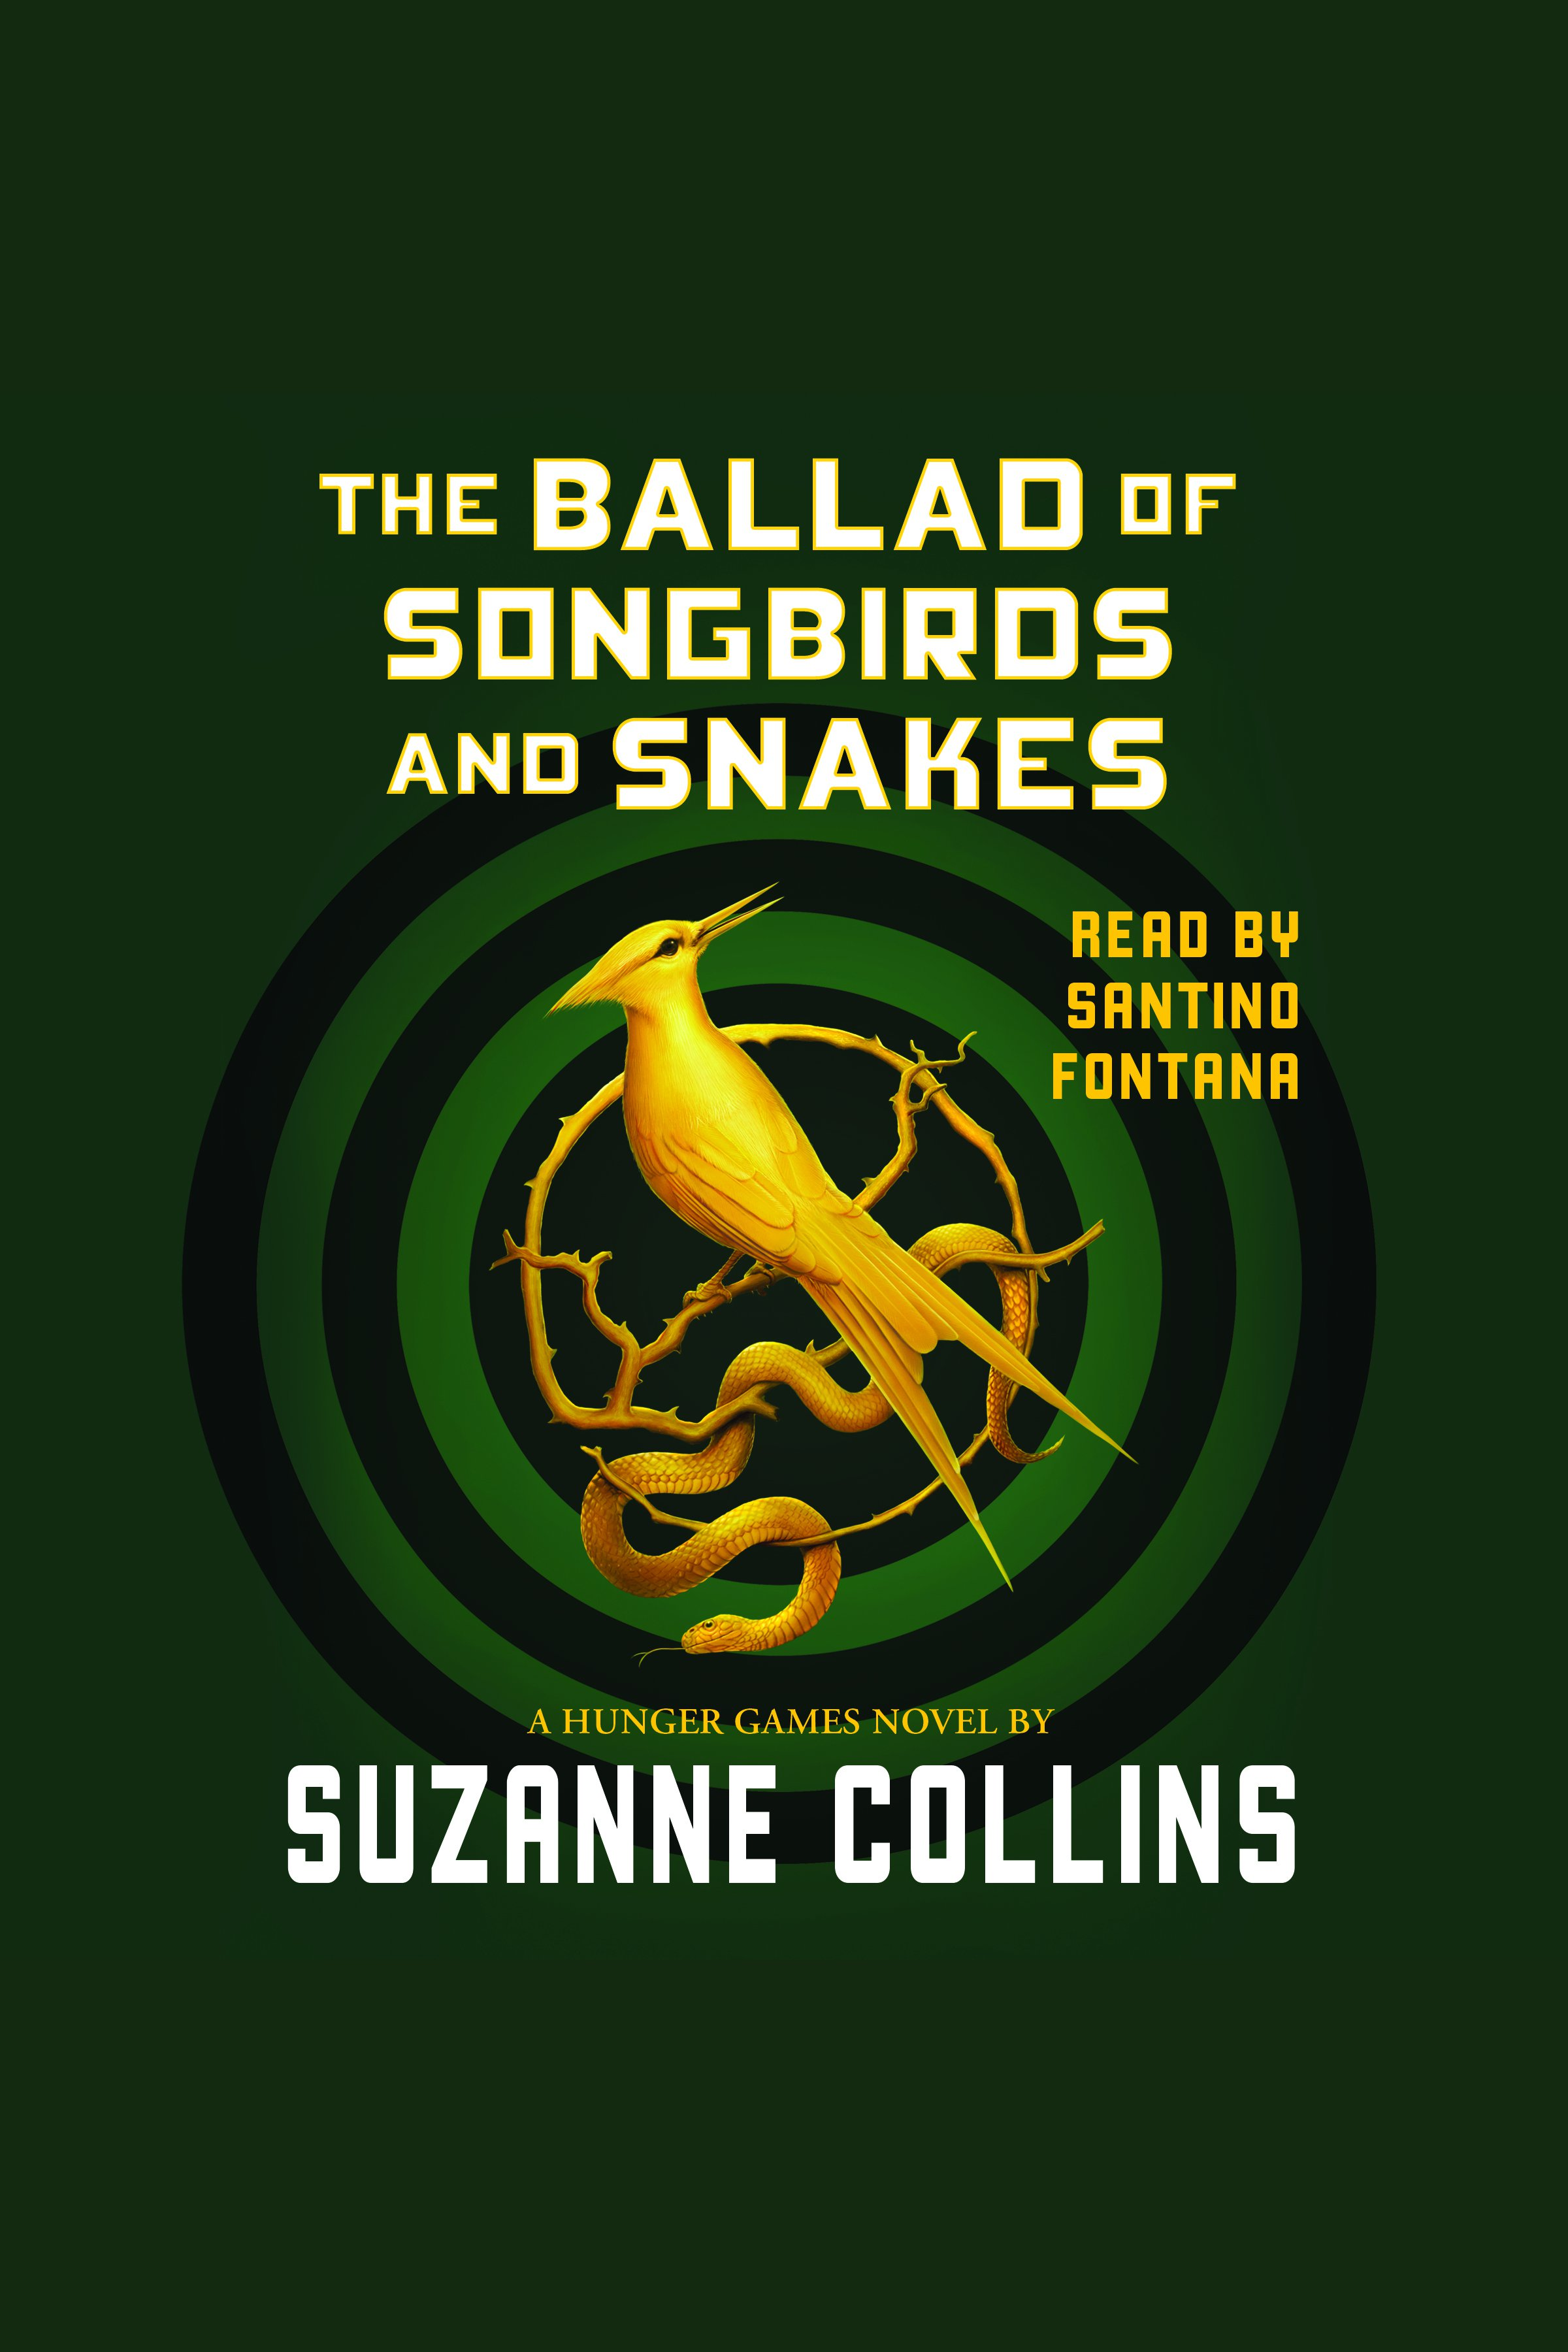 Ballad of Songbirds and Snakes, The A Hunger Games Novel